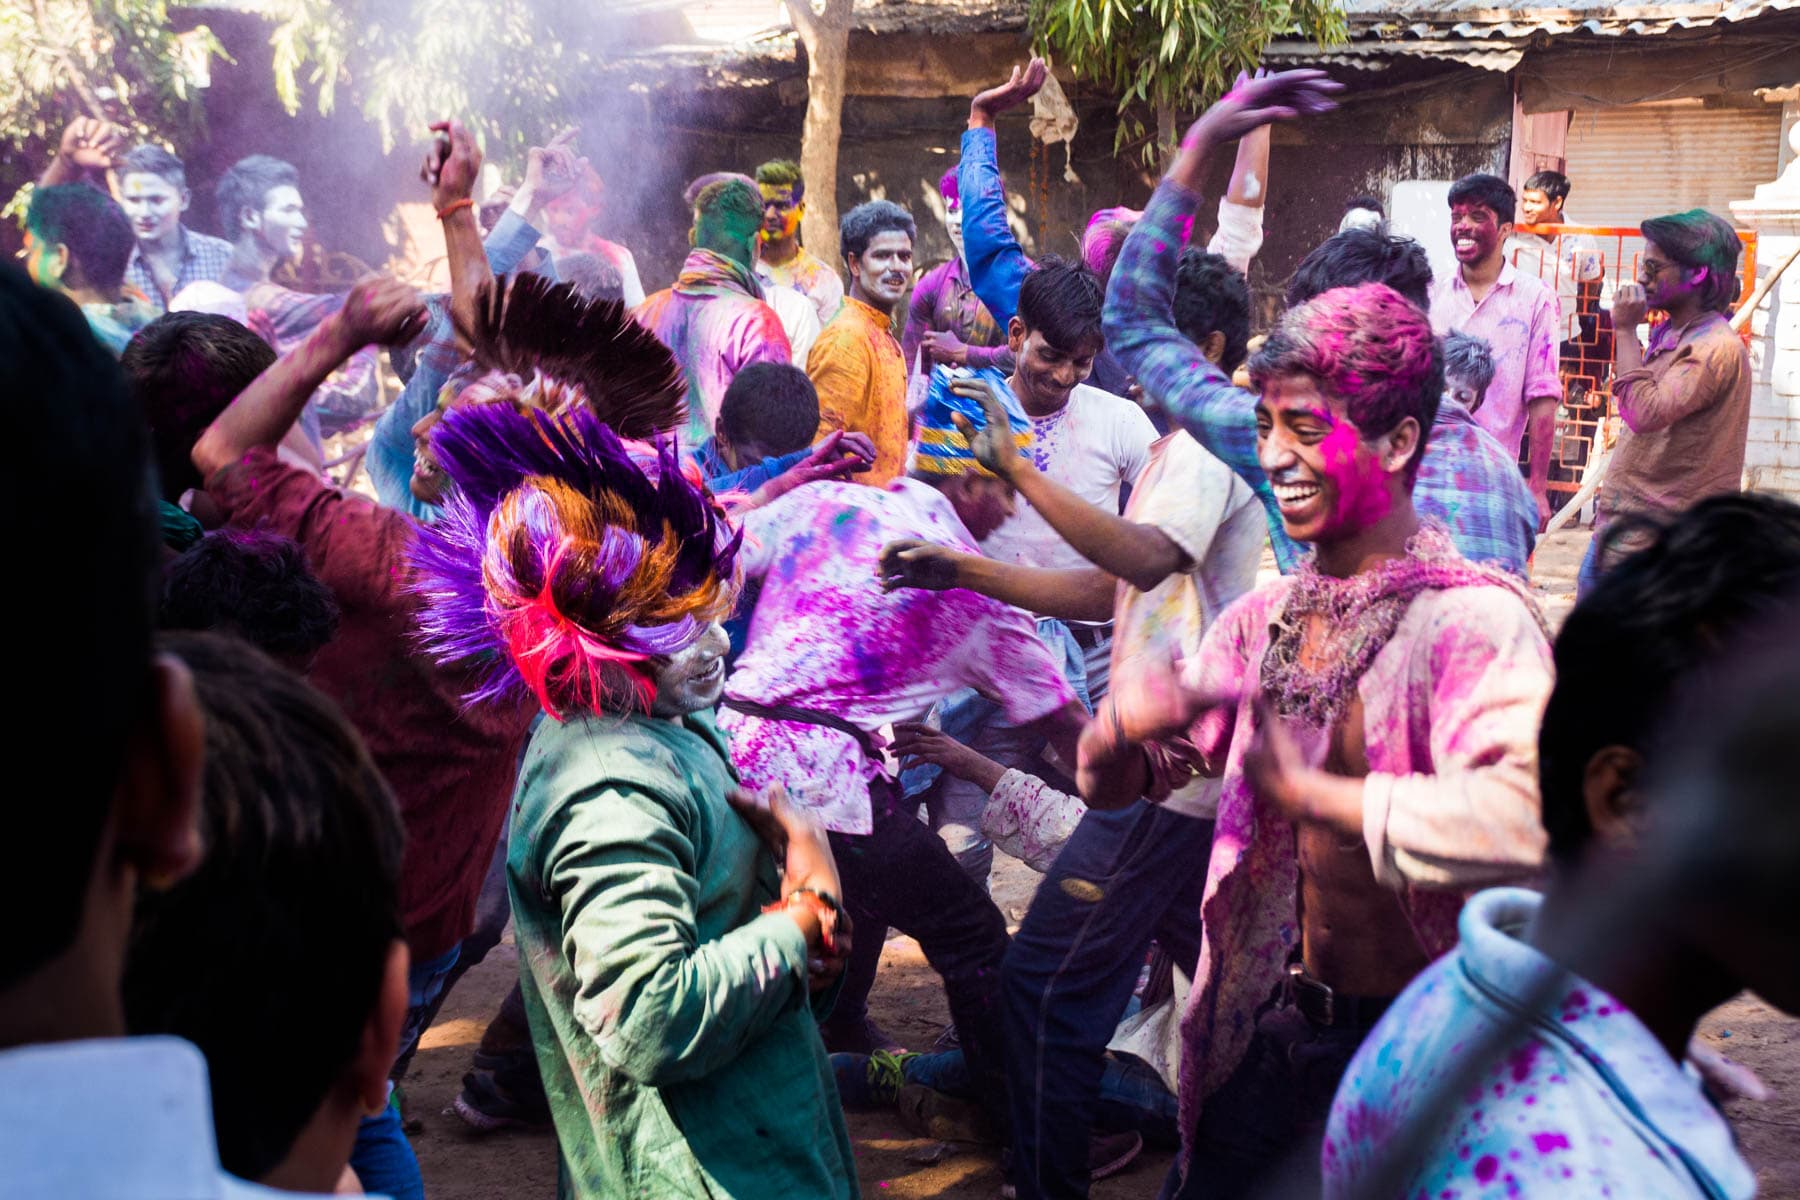 Celebrating Holi as a woman in Varanasi, India - Groups of boys dancing during Holi in Varanasi - Lost With Purpose